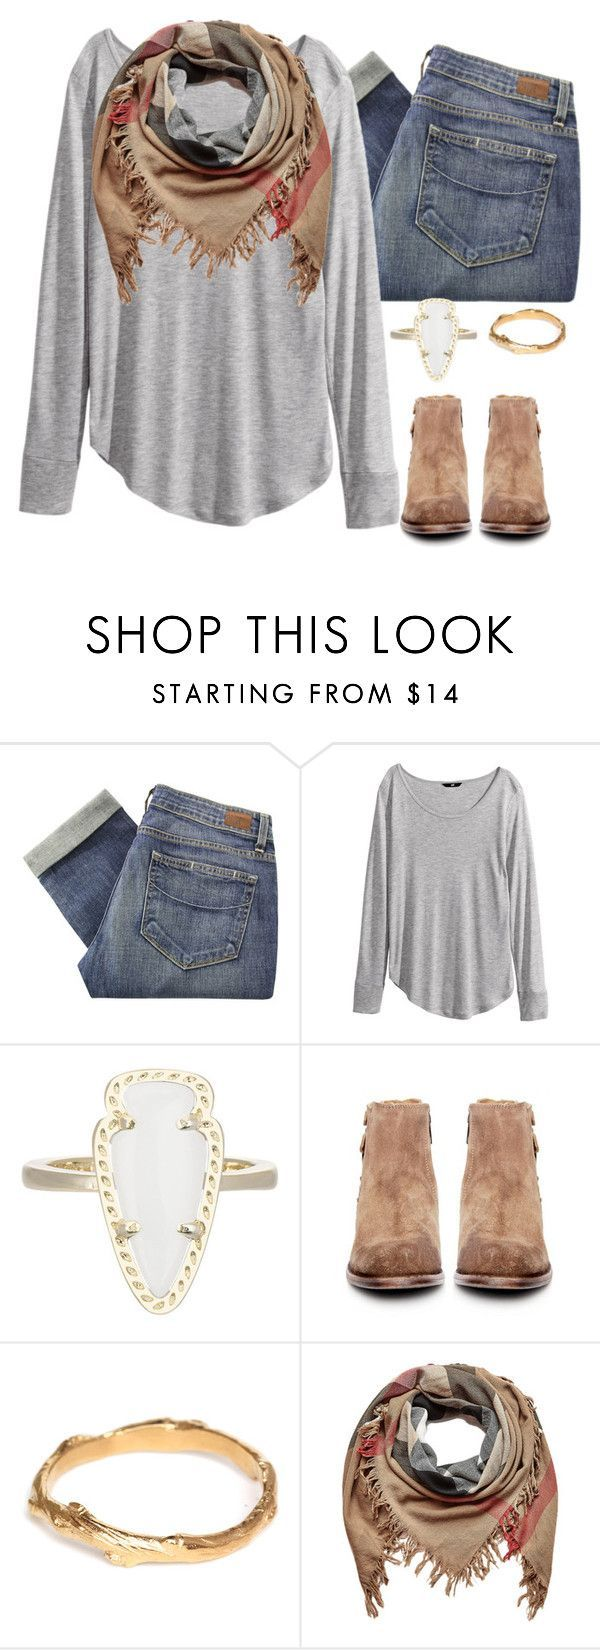 """Do you believe me when I say I ❤️ you more, baby?"" by texas-preppy ❤ liked on Polyvore featuring Paige Denim, H&M, Kendra Scott, H by Hudson, Chupi, Burberry, women's clothing, women's fashion, women and female"